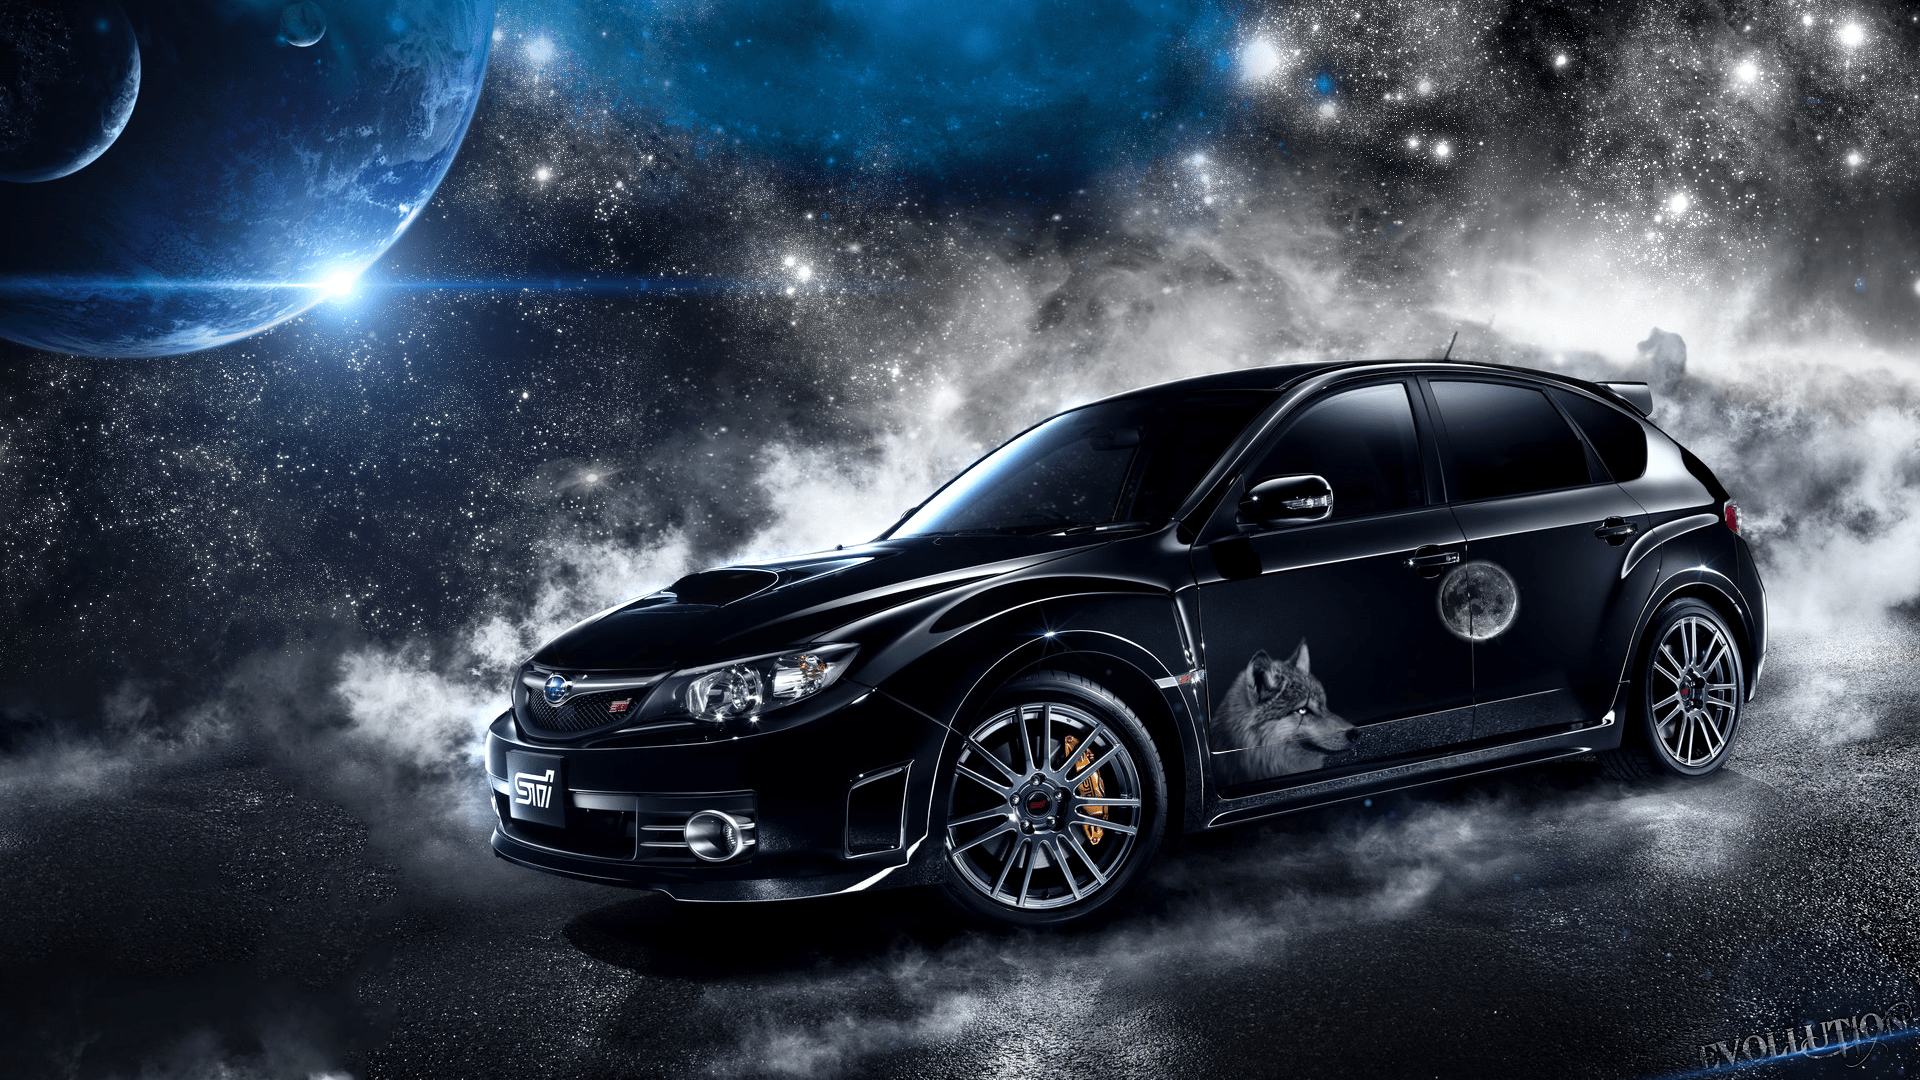 Tuner Car Wallpaper Hd Subaru Wallpaper Hd Backgrounds 1265 Wallpaper